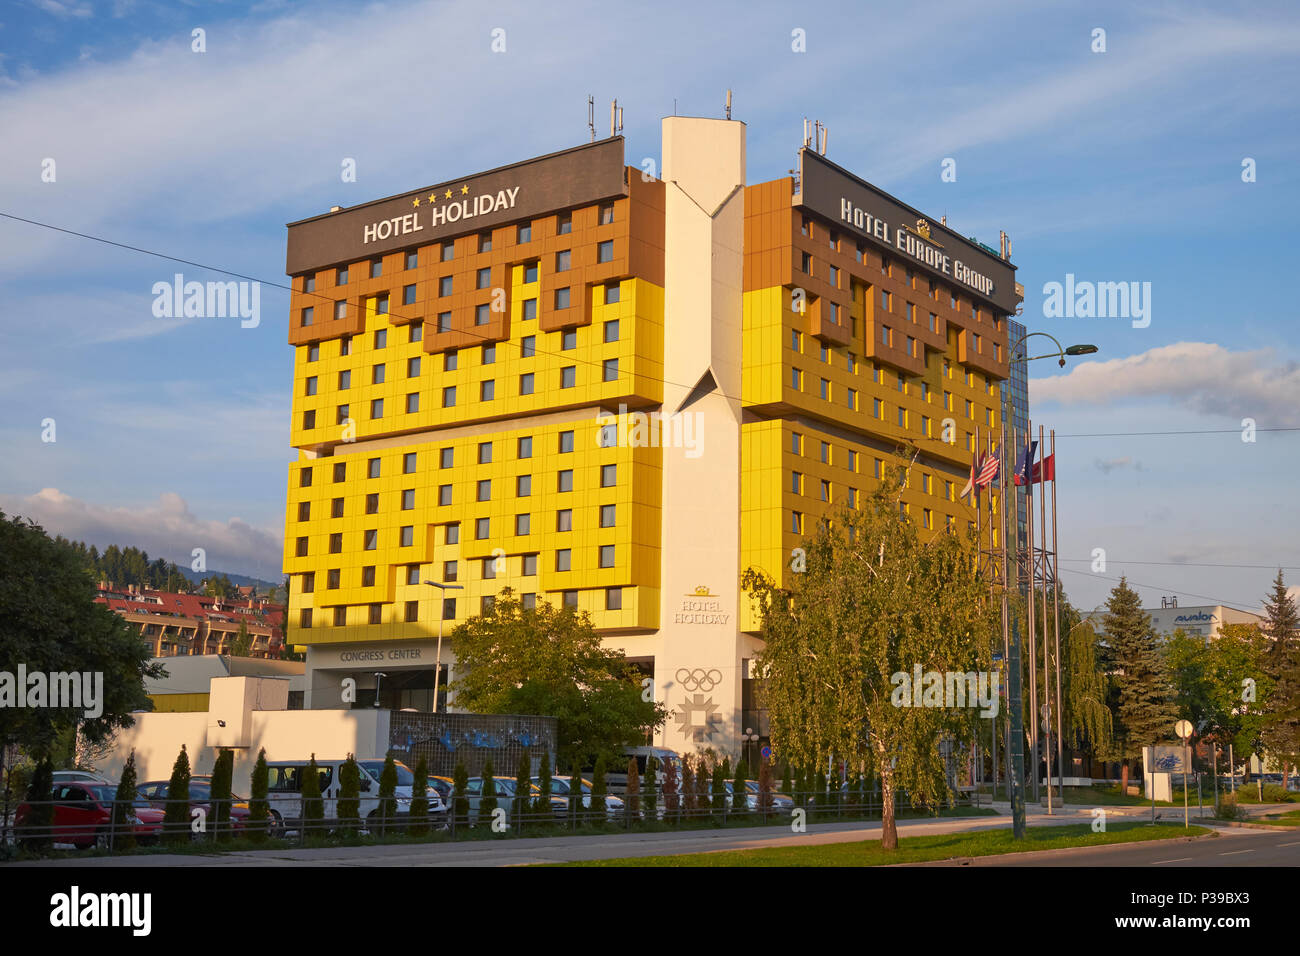 The Hotel Holiday (formerly the Holiday Inn), Sarajevo, Bosnia & Herzegovina was home to foreign correspondents during the siege of Sarajevo 1992-96. - Stock Image